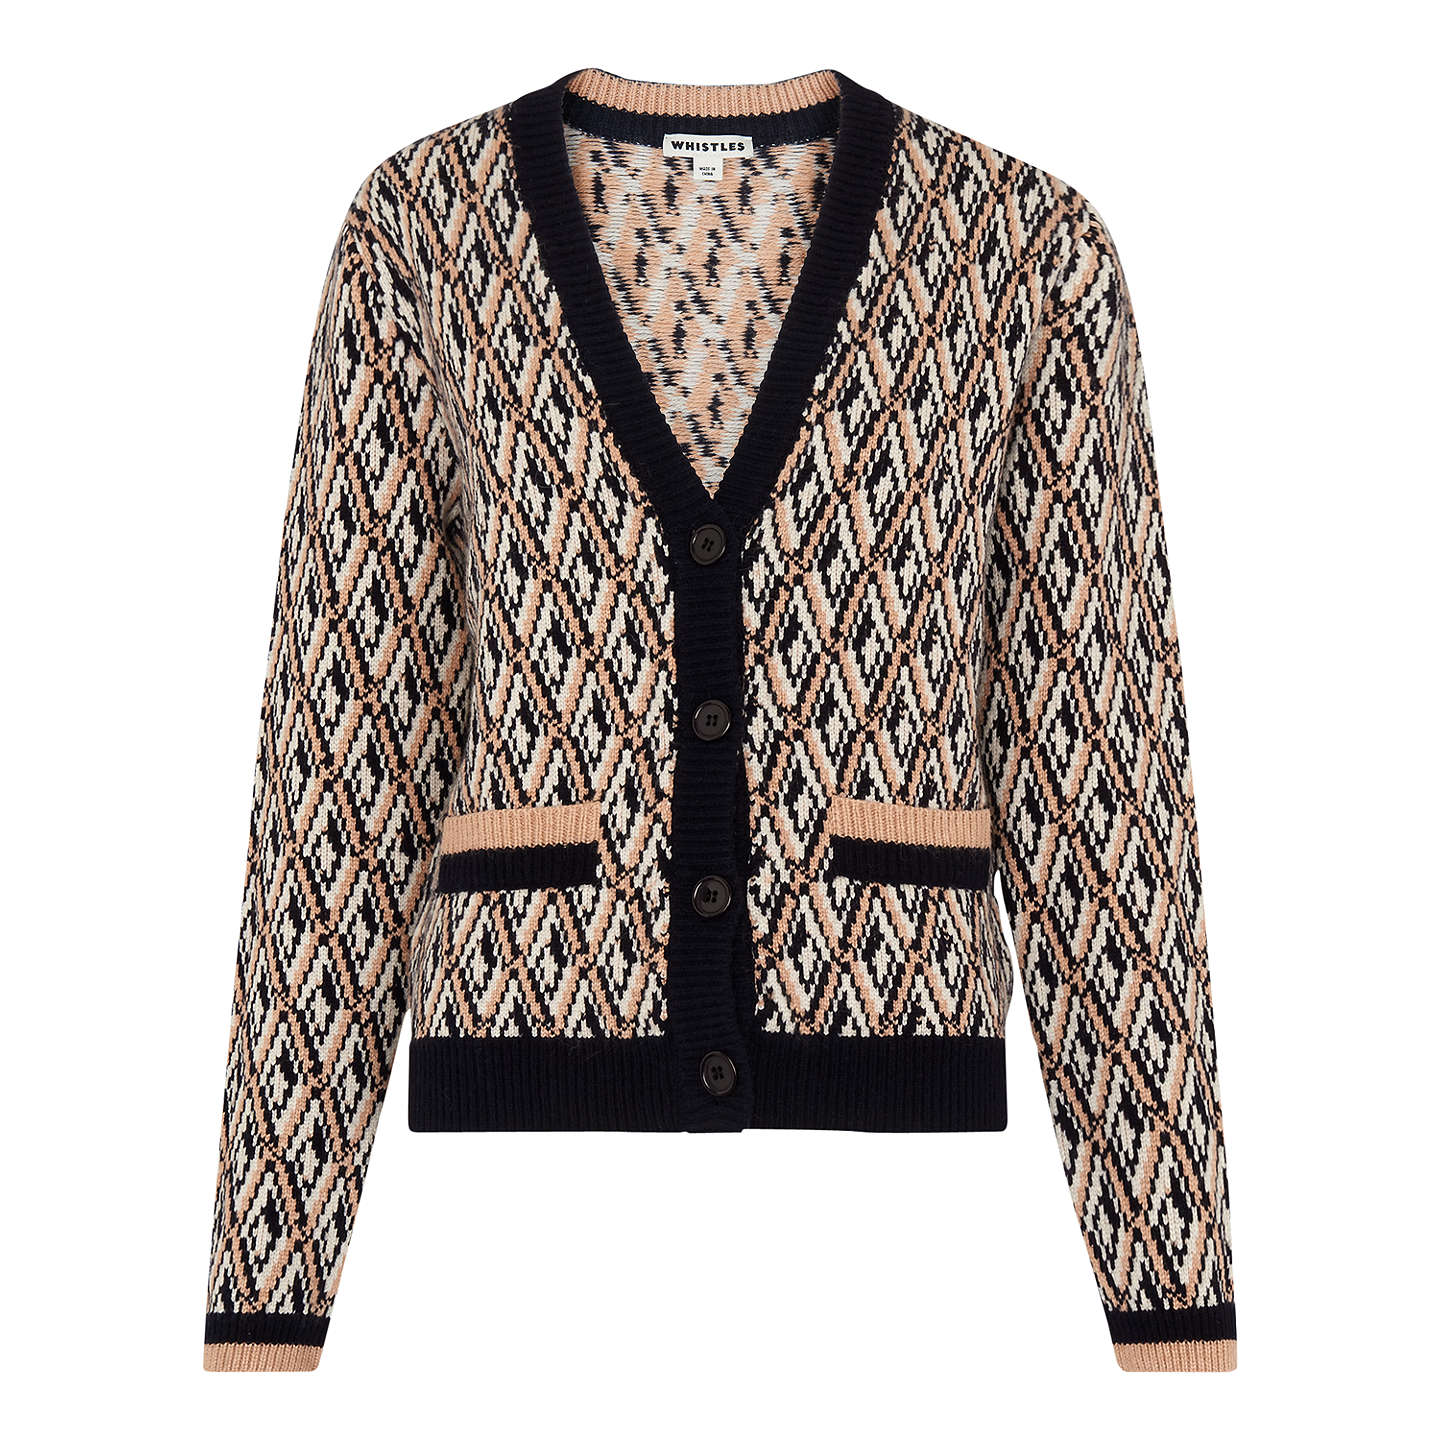 BuyWhistles Diamond Jacquard Cardigan, Multicolour, S Online at johnlewis.com